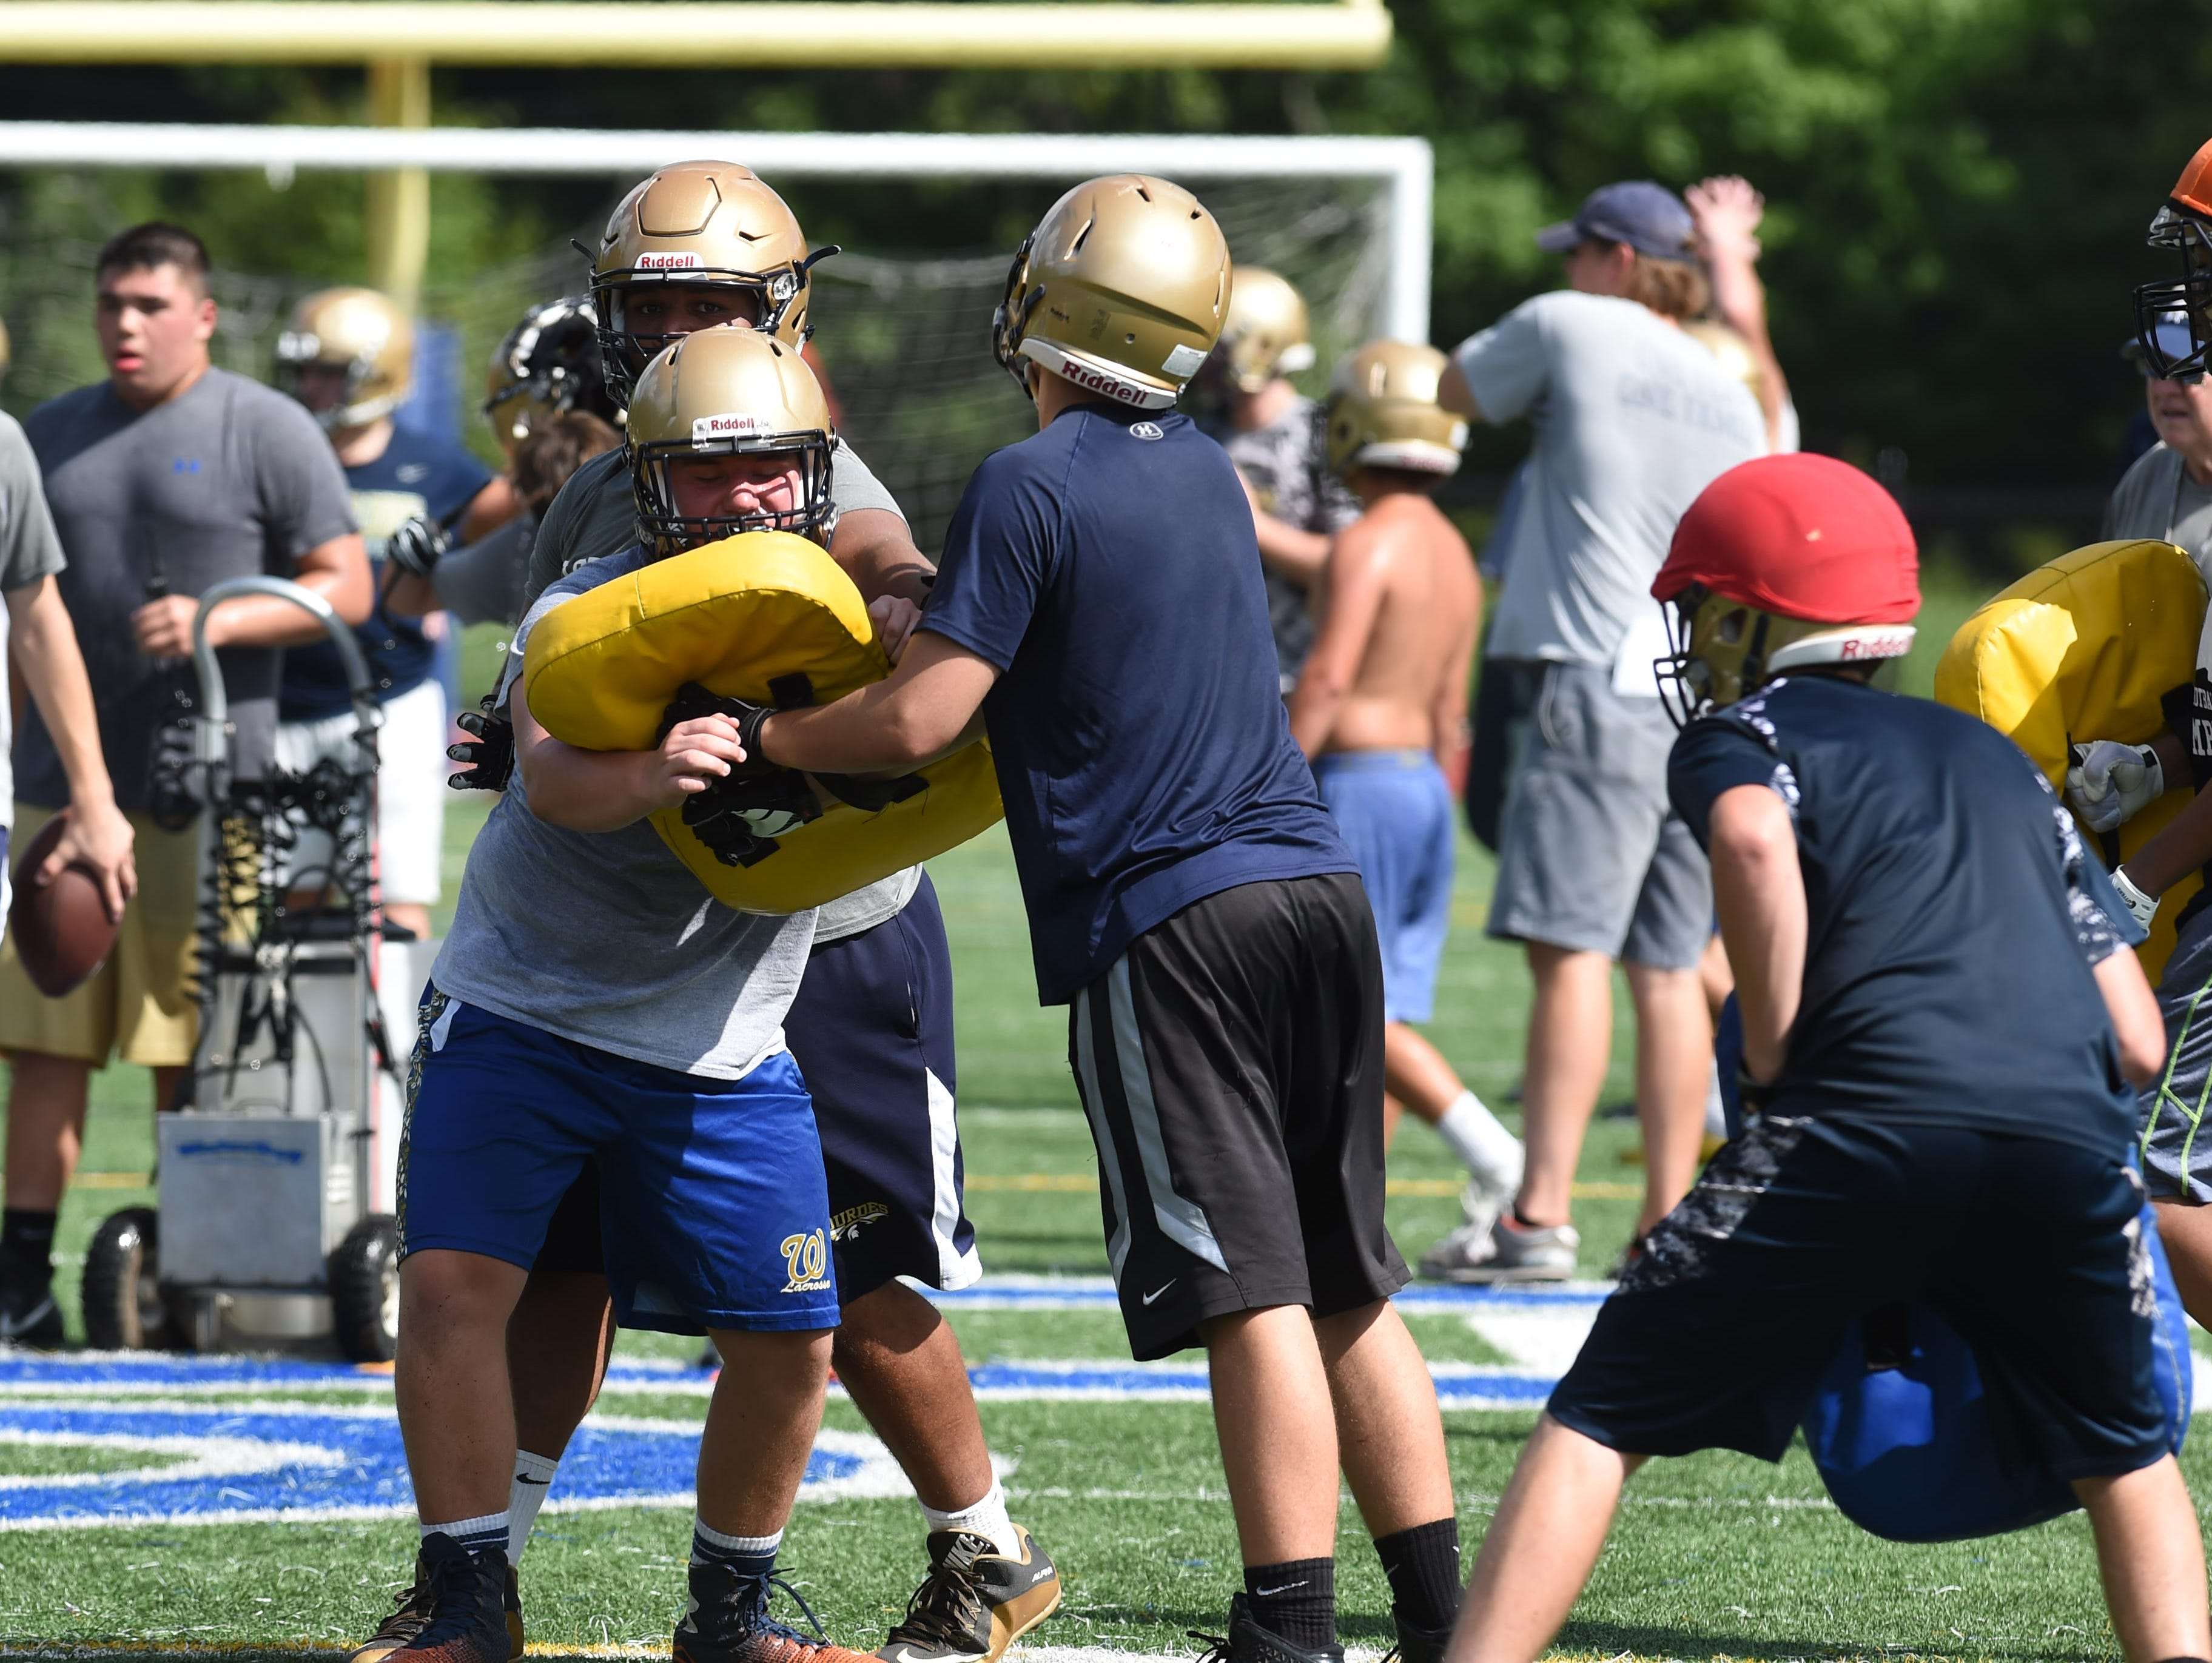 Sophomore Kevin Johansson, left, of Our Lady of Lourdes High School goes for a tackle during preseason football practice.